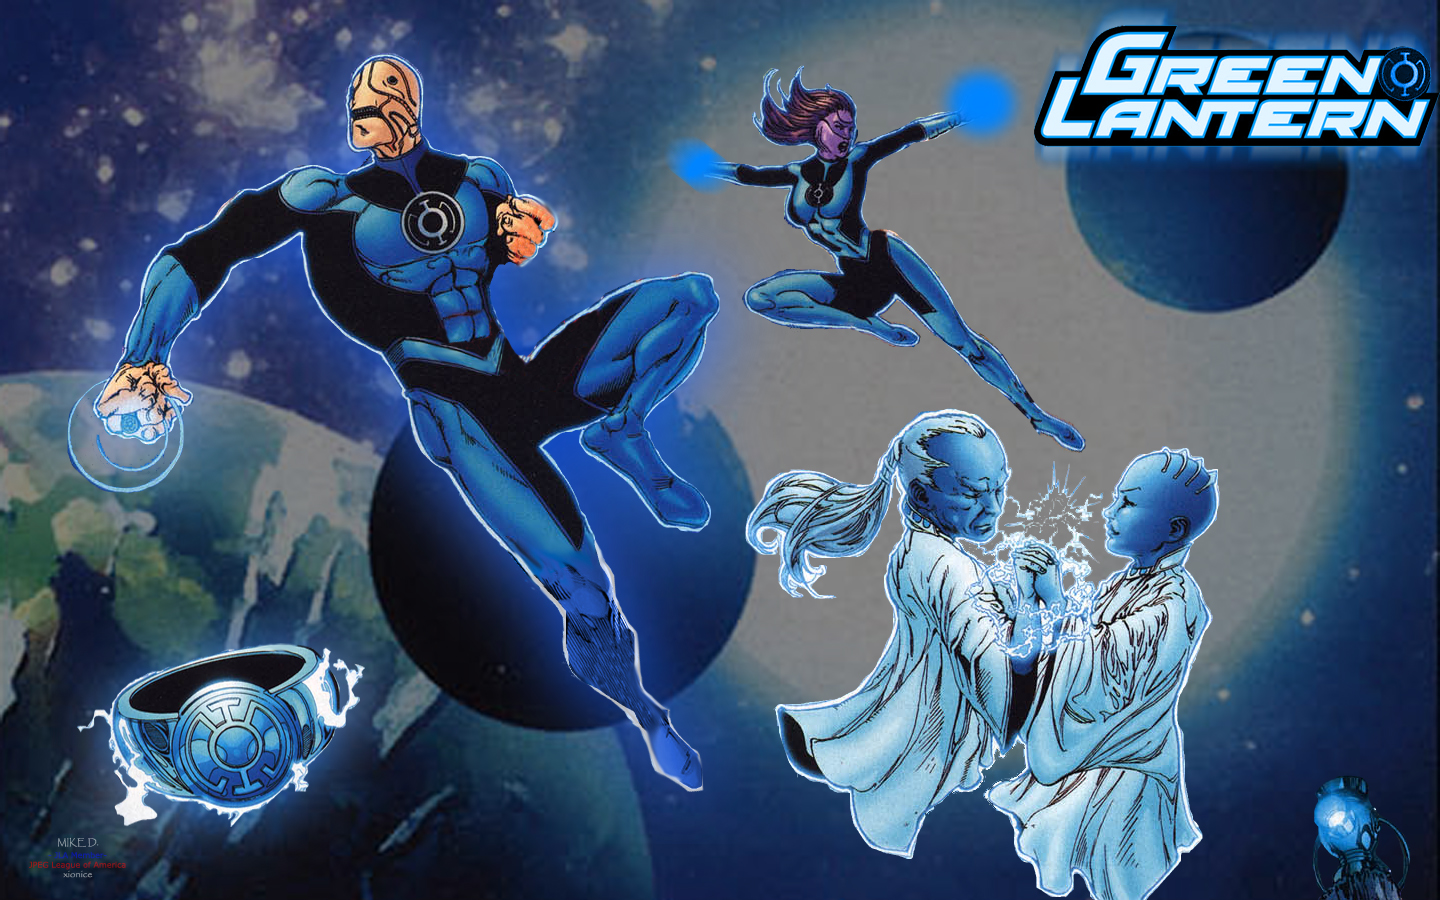 blue lantern corps by xionice fan art wallpaper books novels 2008 2015 1440x900